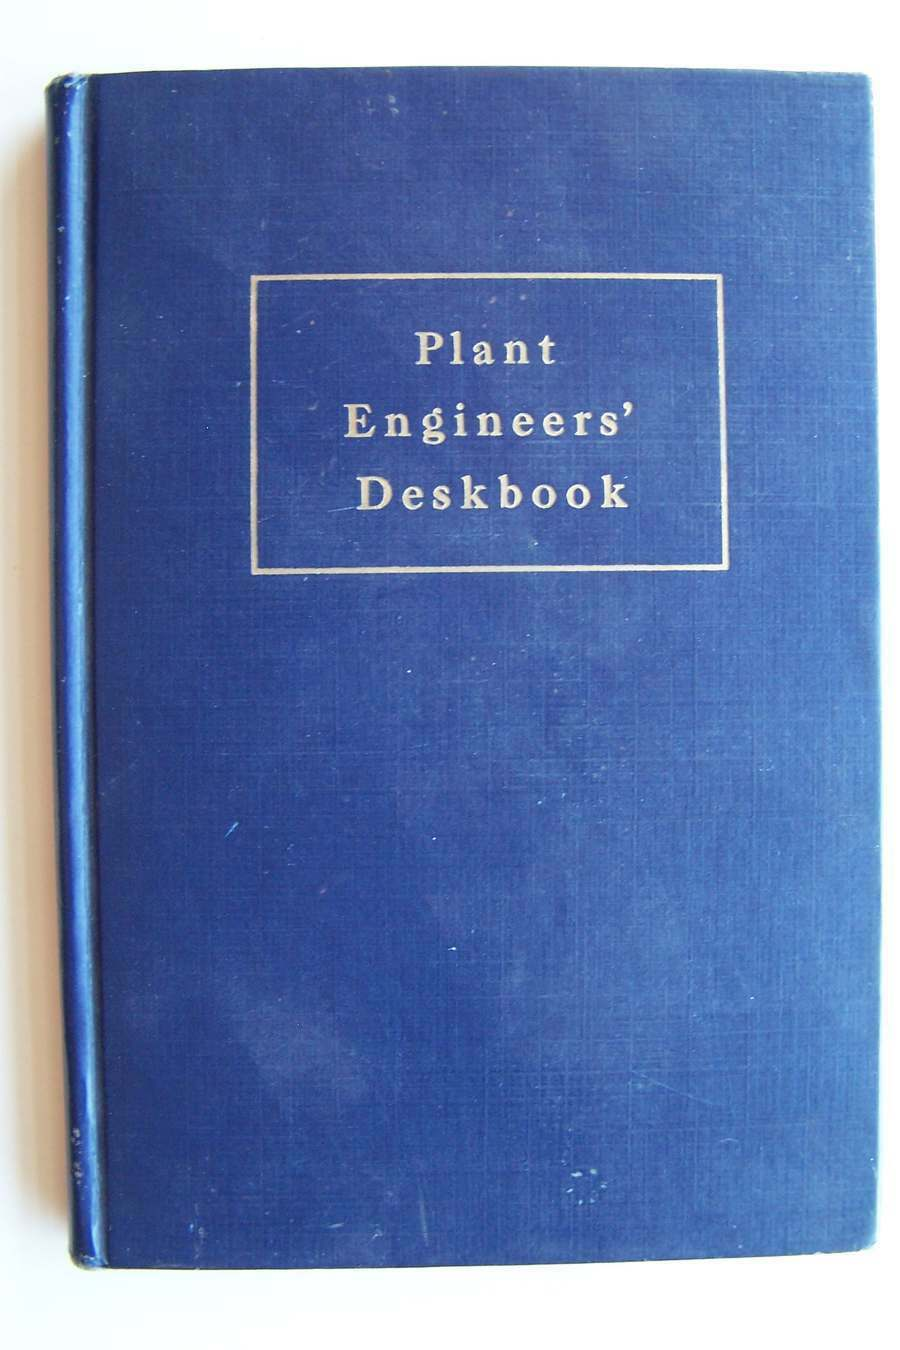 Plant Engineers' Deskbook for Better Plant Services at